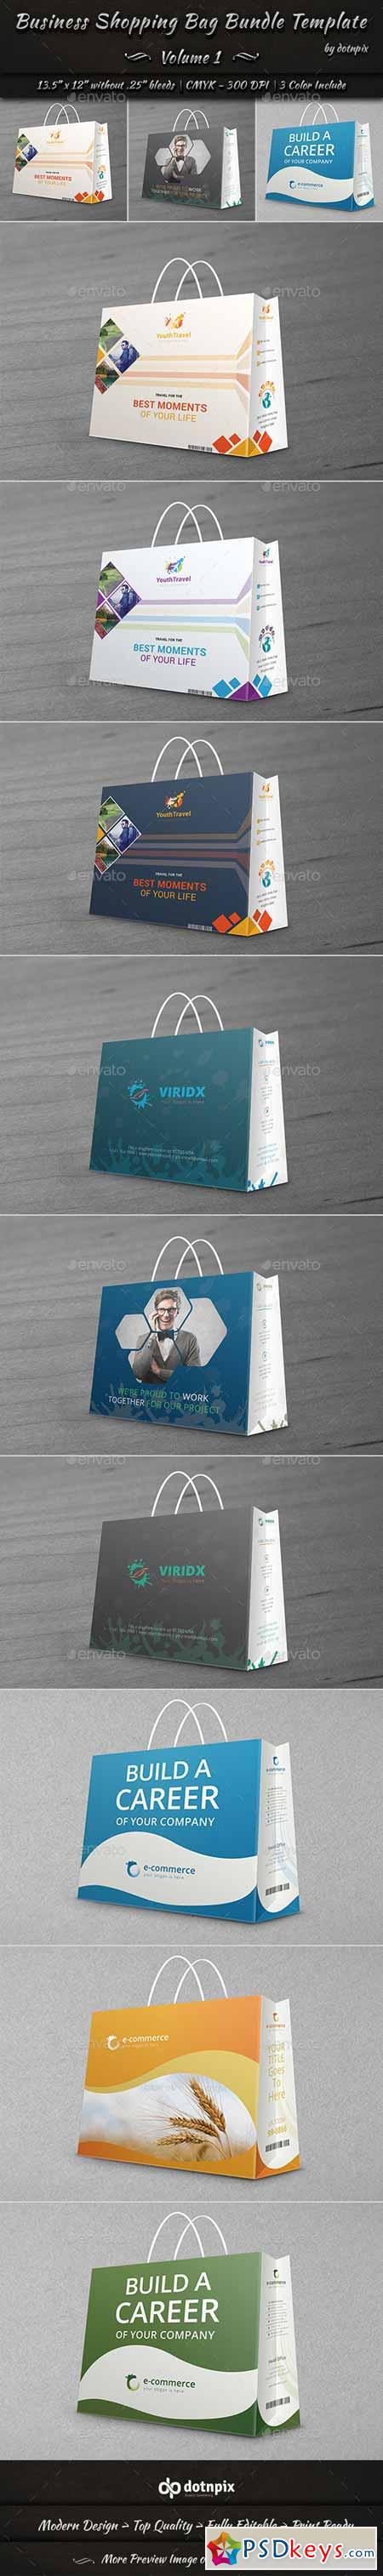 Business Shopping Bag Bundle Template Volume 1 10866469